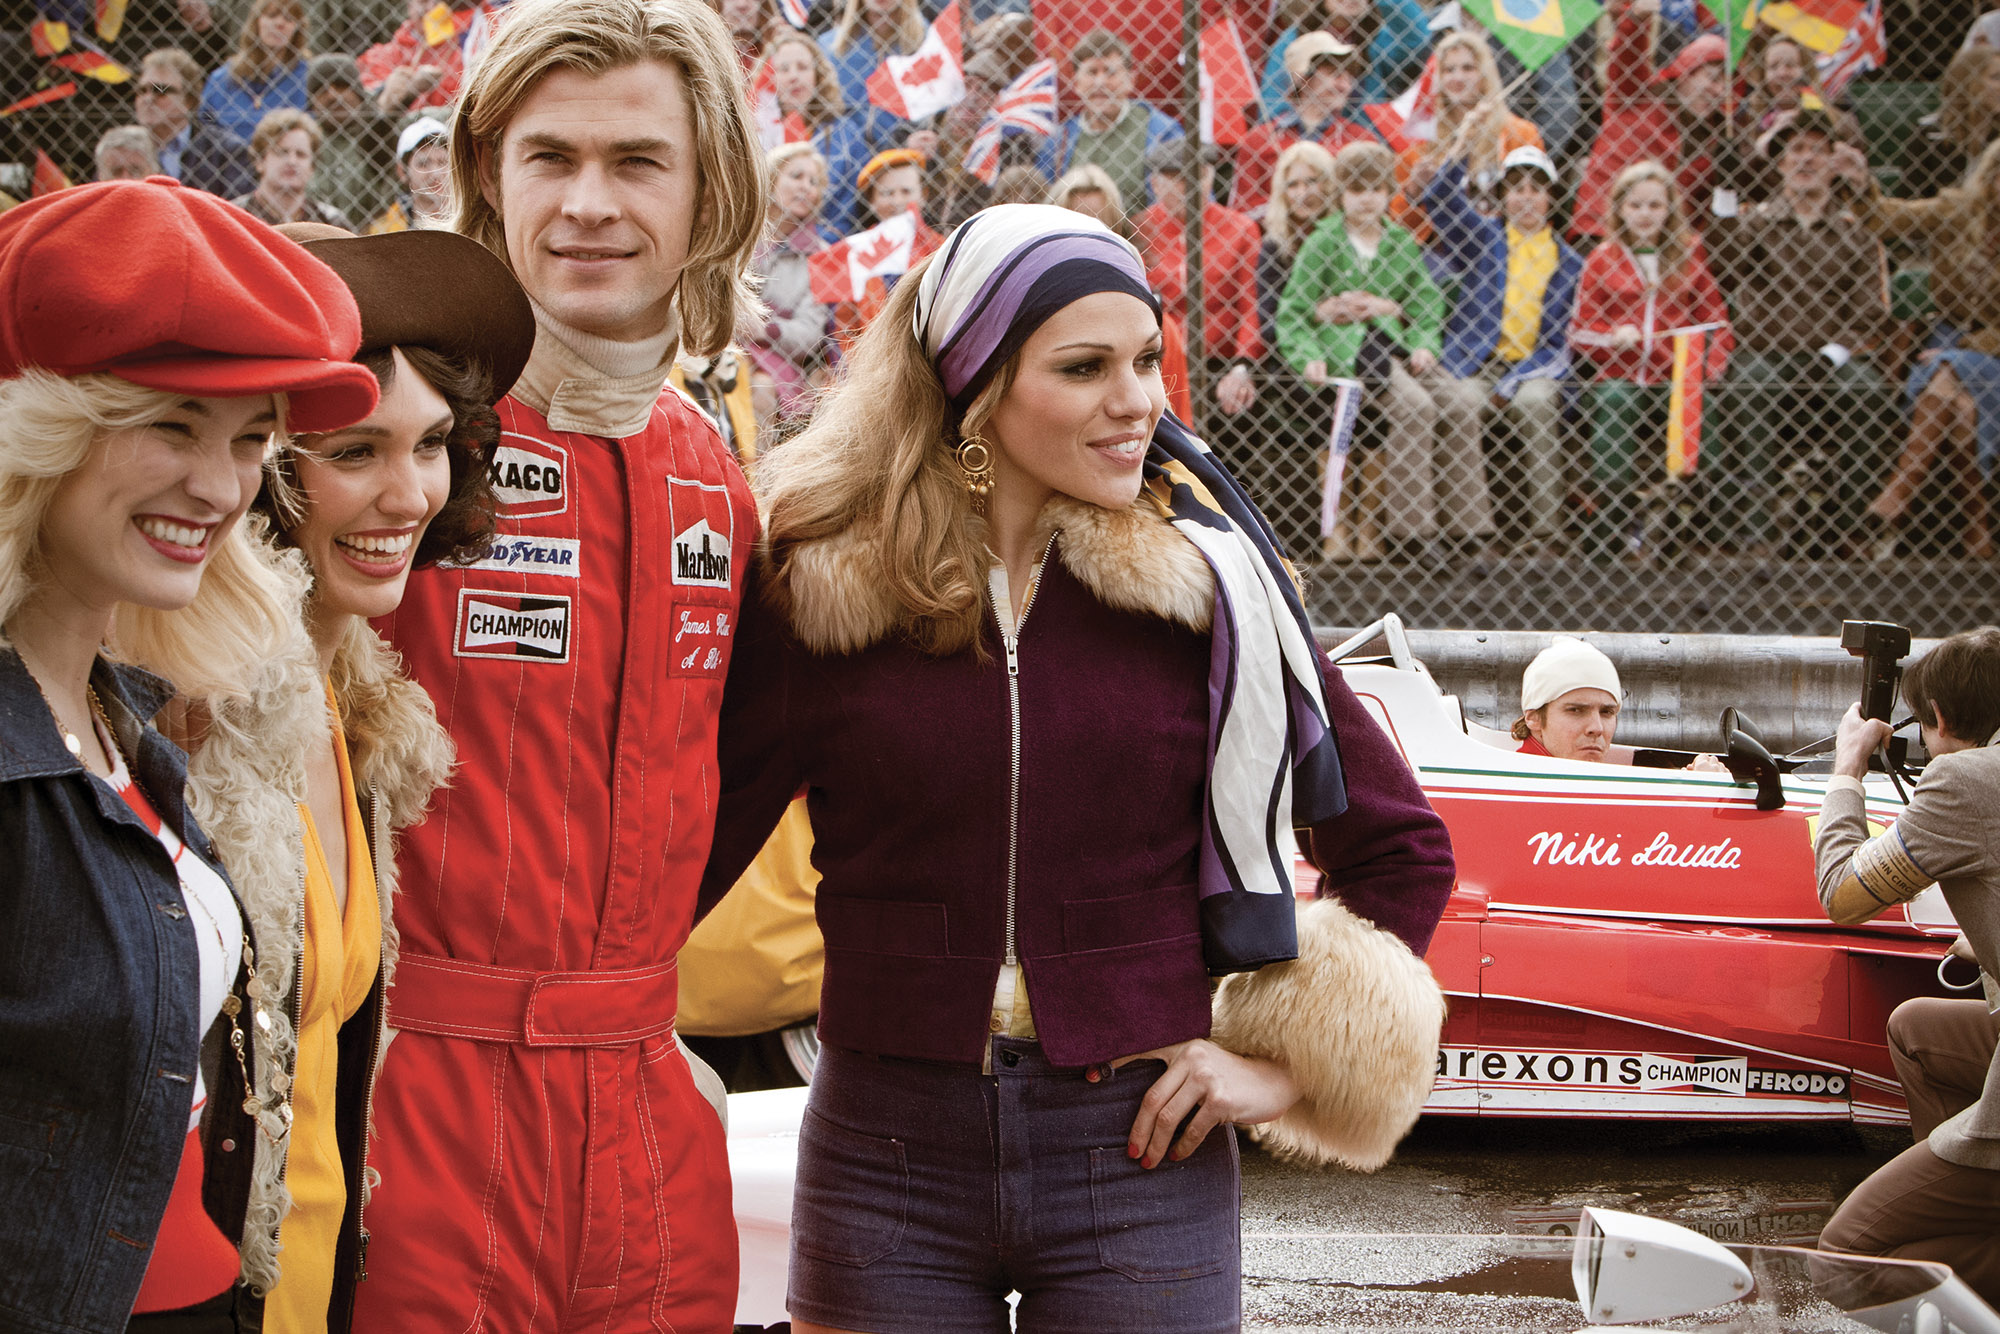 Rush official film image